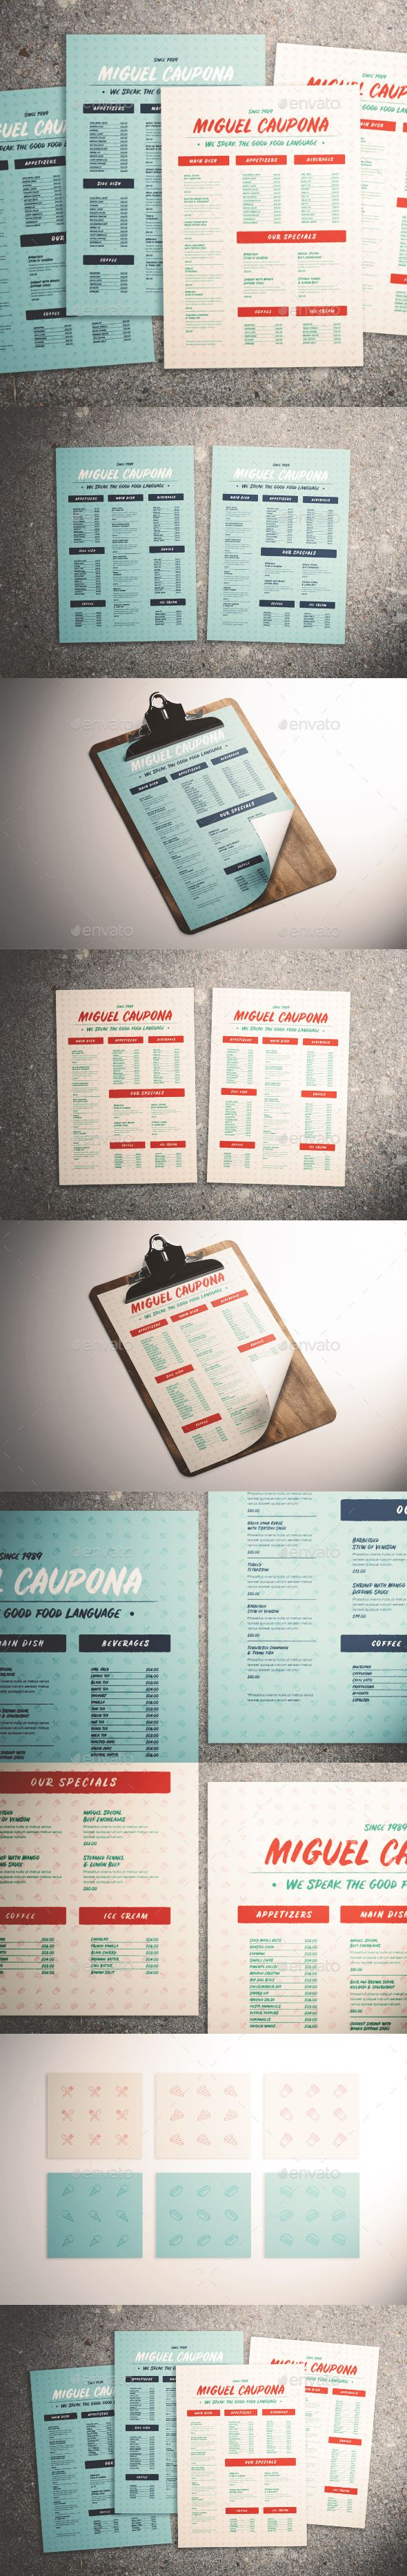 Food Menu #typography #young • Download ➝ https://graphicriver.net/item/food-menu/21330092?ref=pxcr